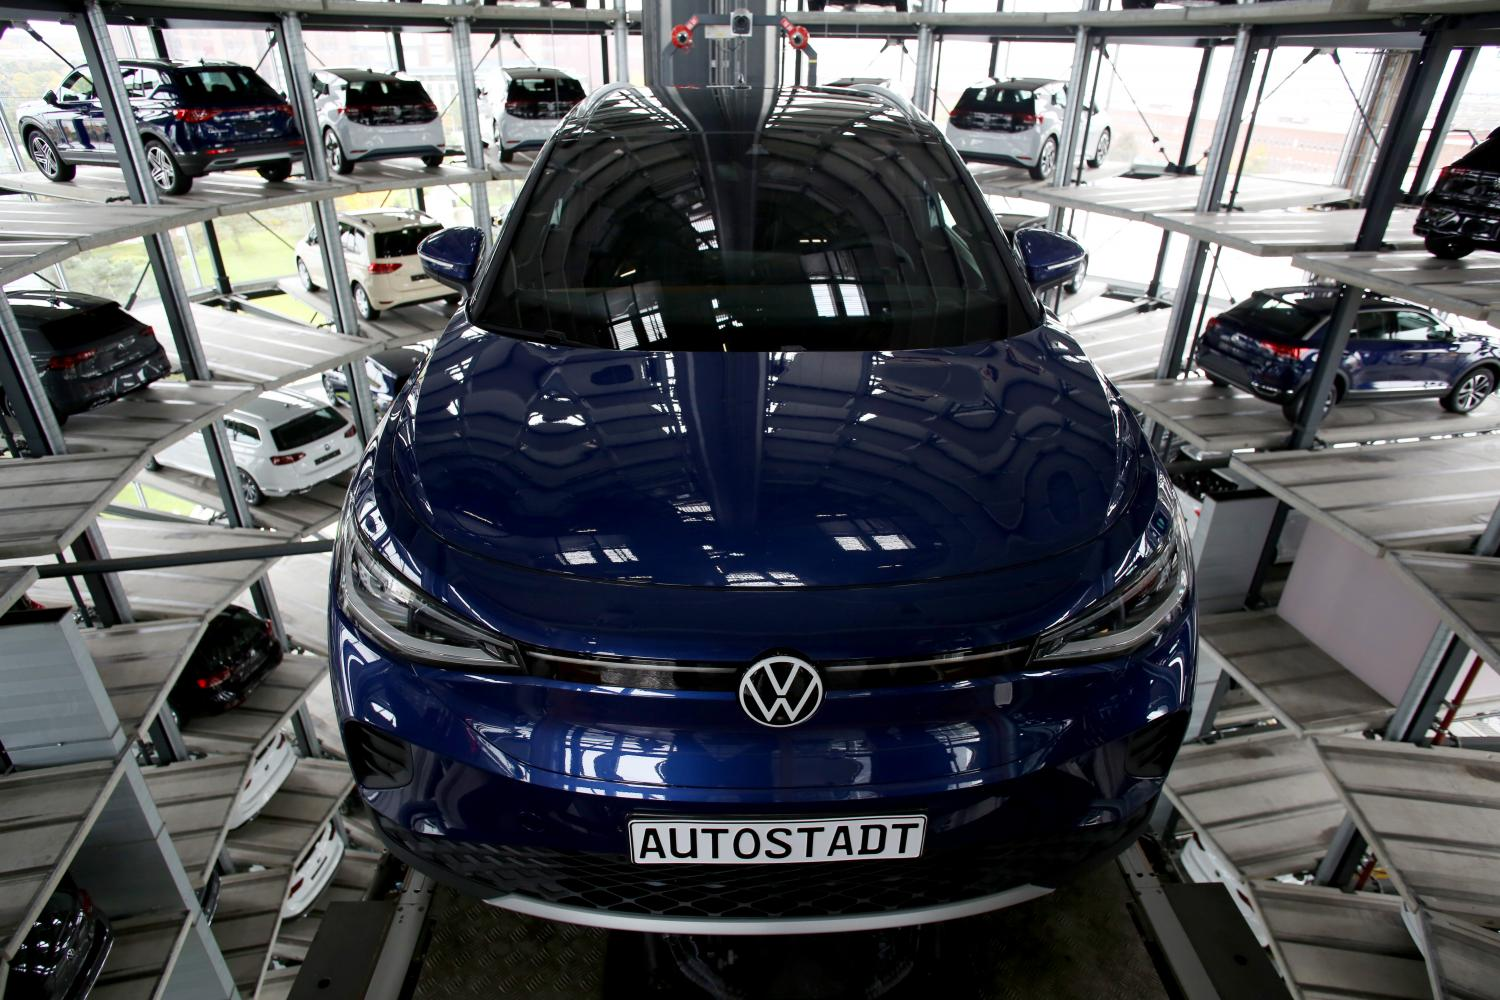 Volkswagen AG will replace about 1,500 combustion-engine vehicles with 1,000 electric models in Astypalea, including the new ID.3 compact and ID.4 crossover (above).(Bloomberg photo)